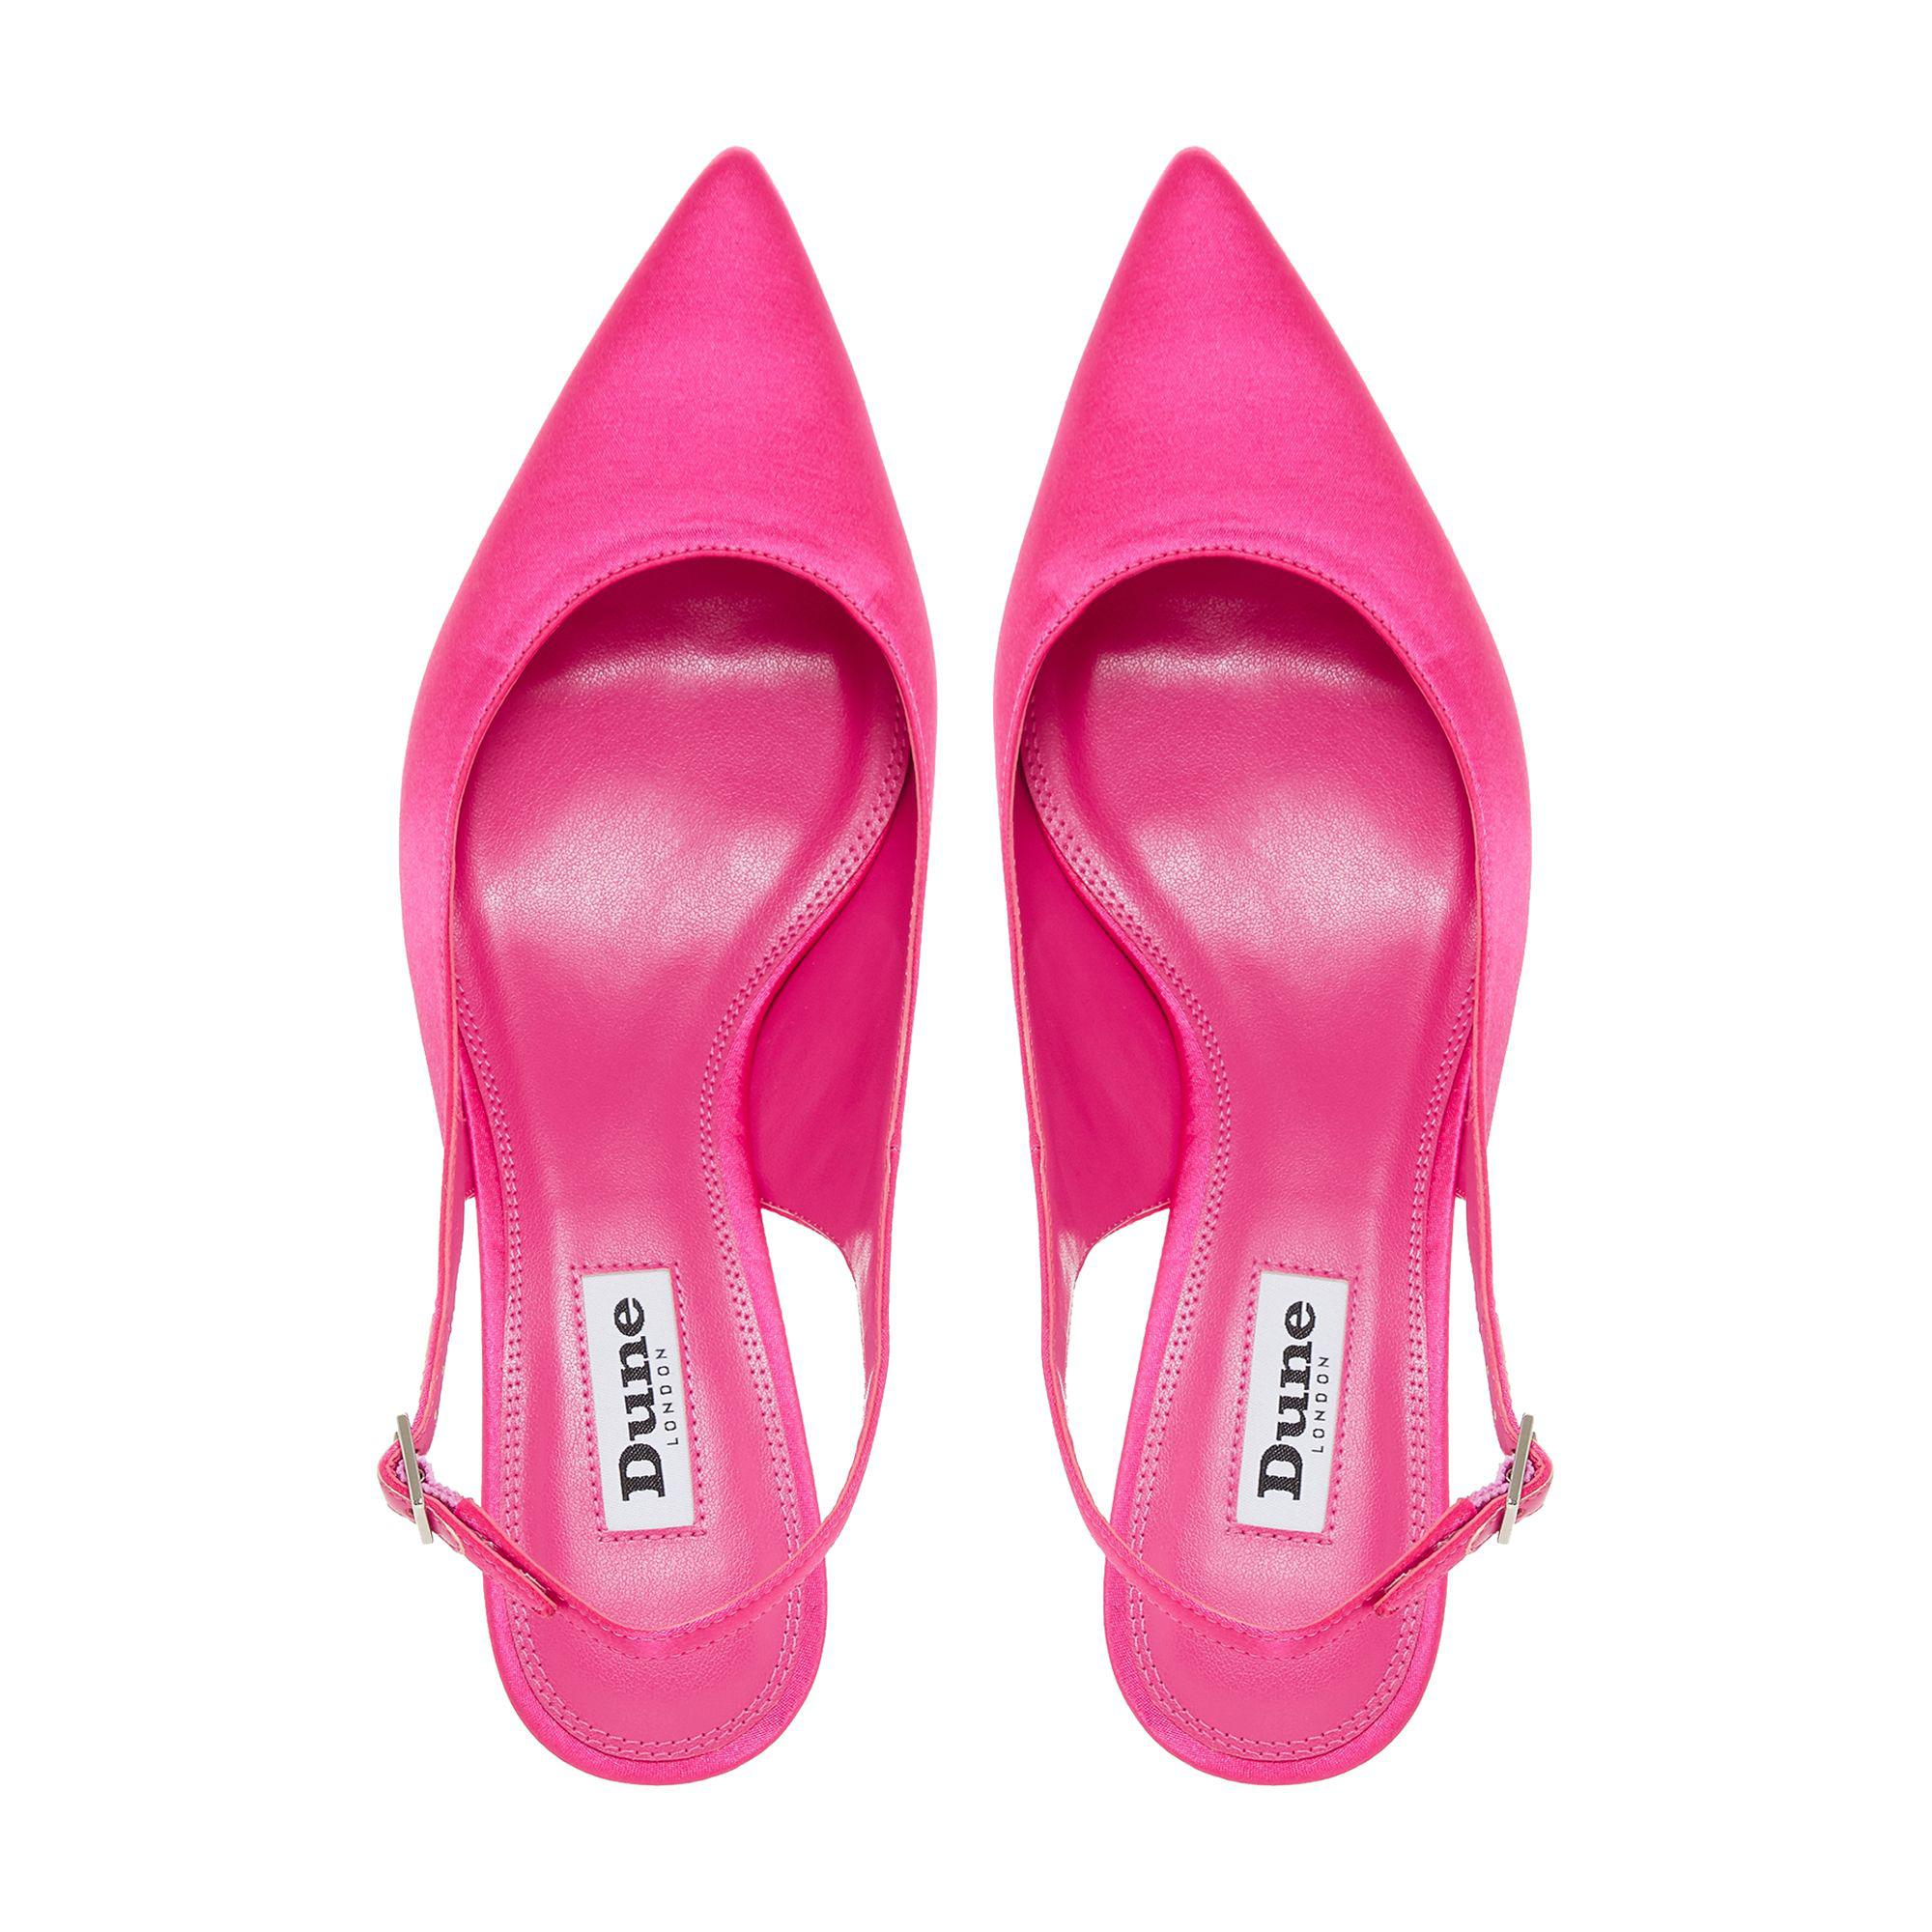 6086a39468a Dune Bright Pink  crystal  Mid Kitten Heel Court Shoes in Pink - Lyst